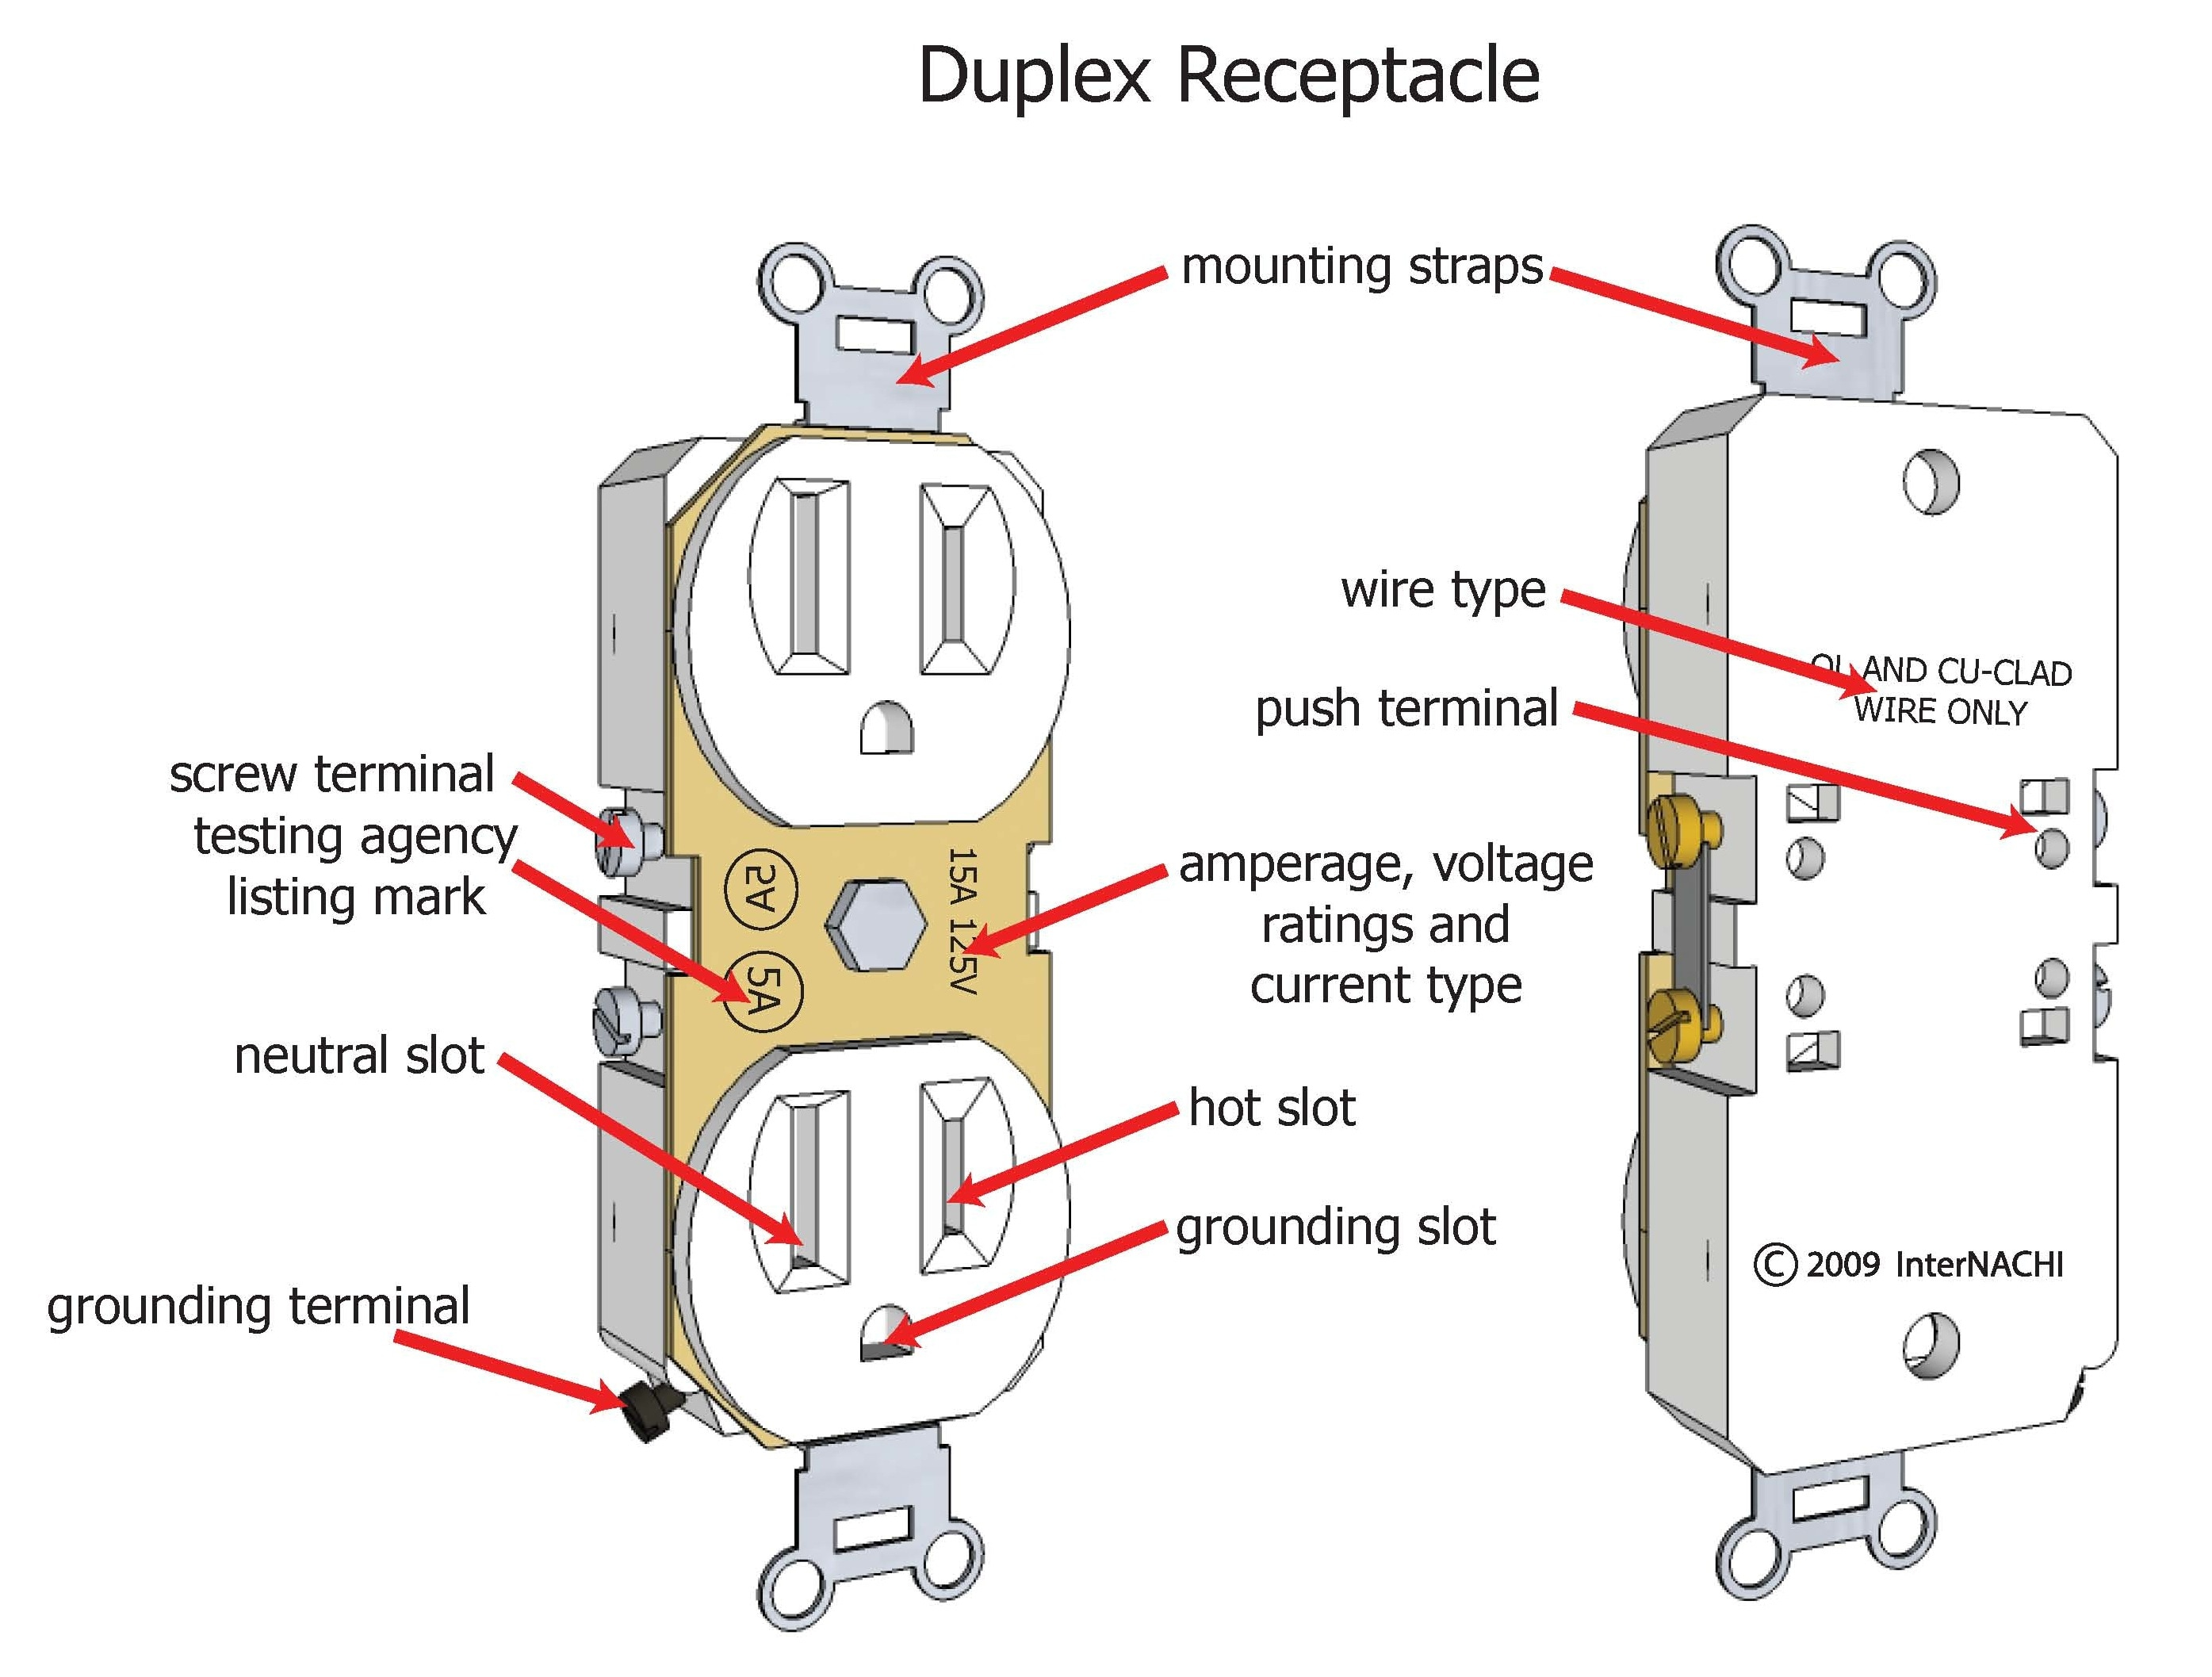 Duplex Receptacle - Inspection Gallery